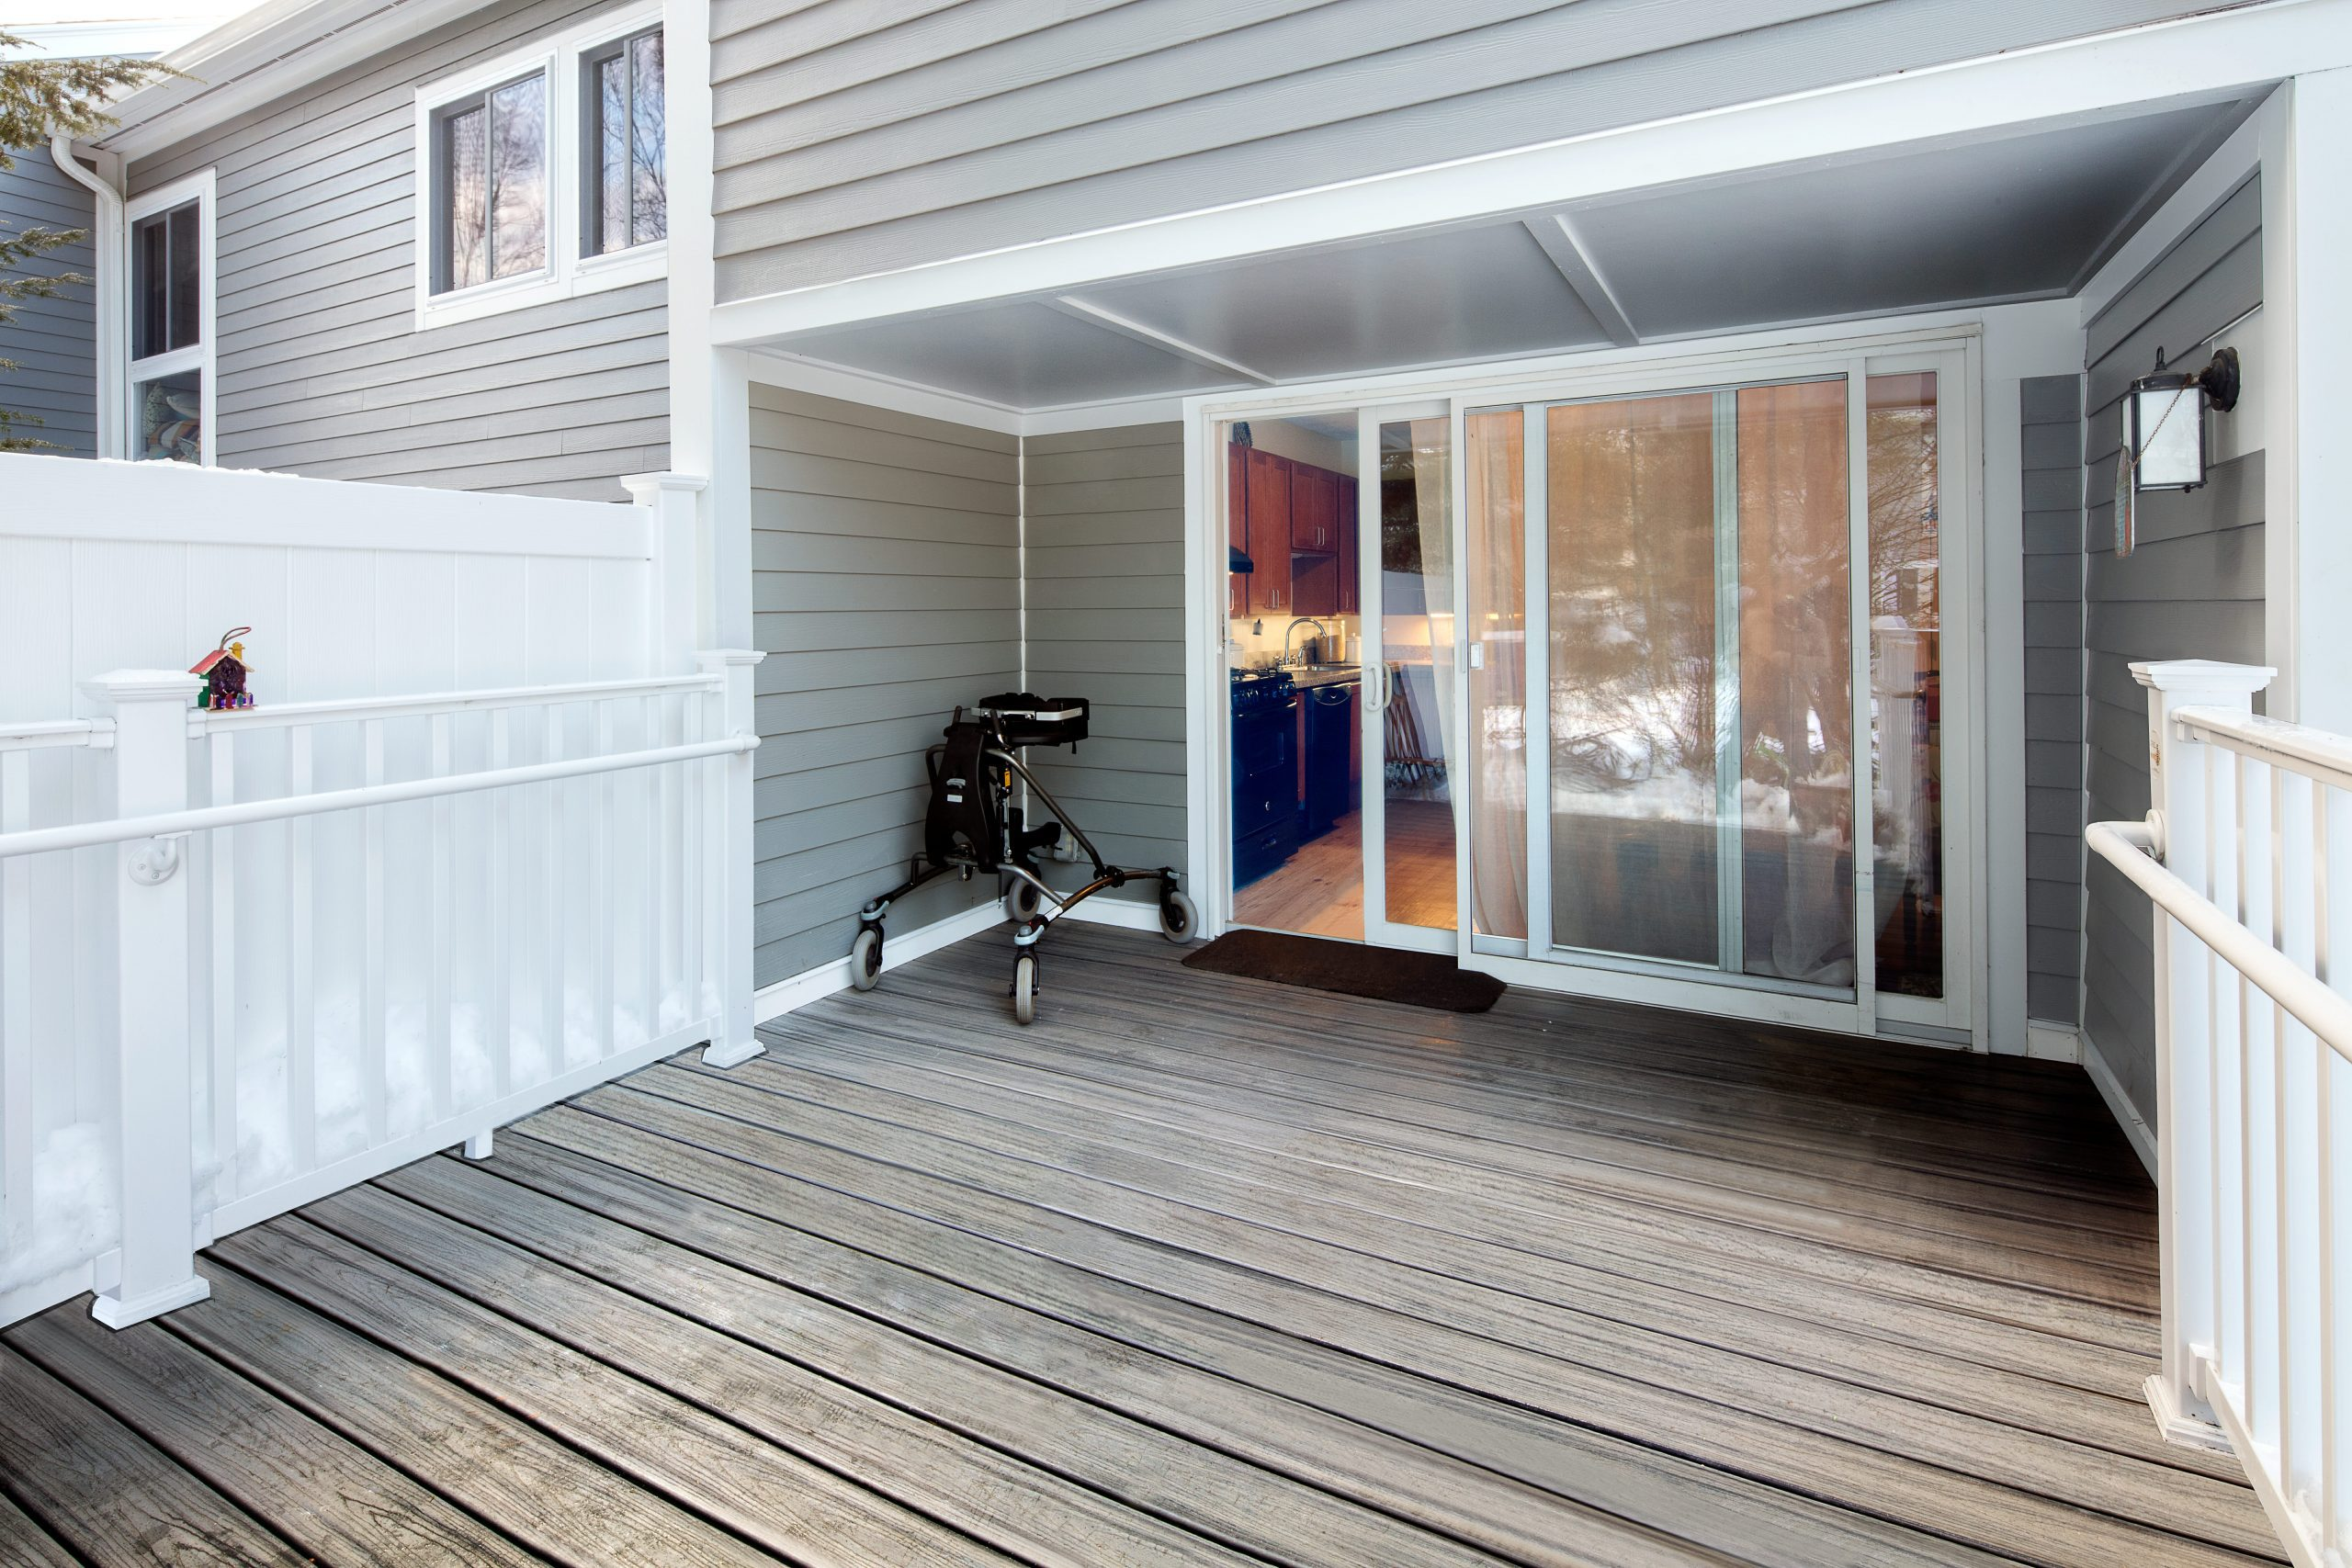 view of the back porch with an accessible threshold